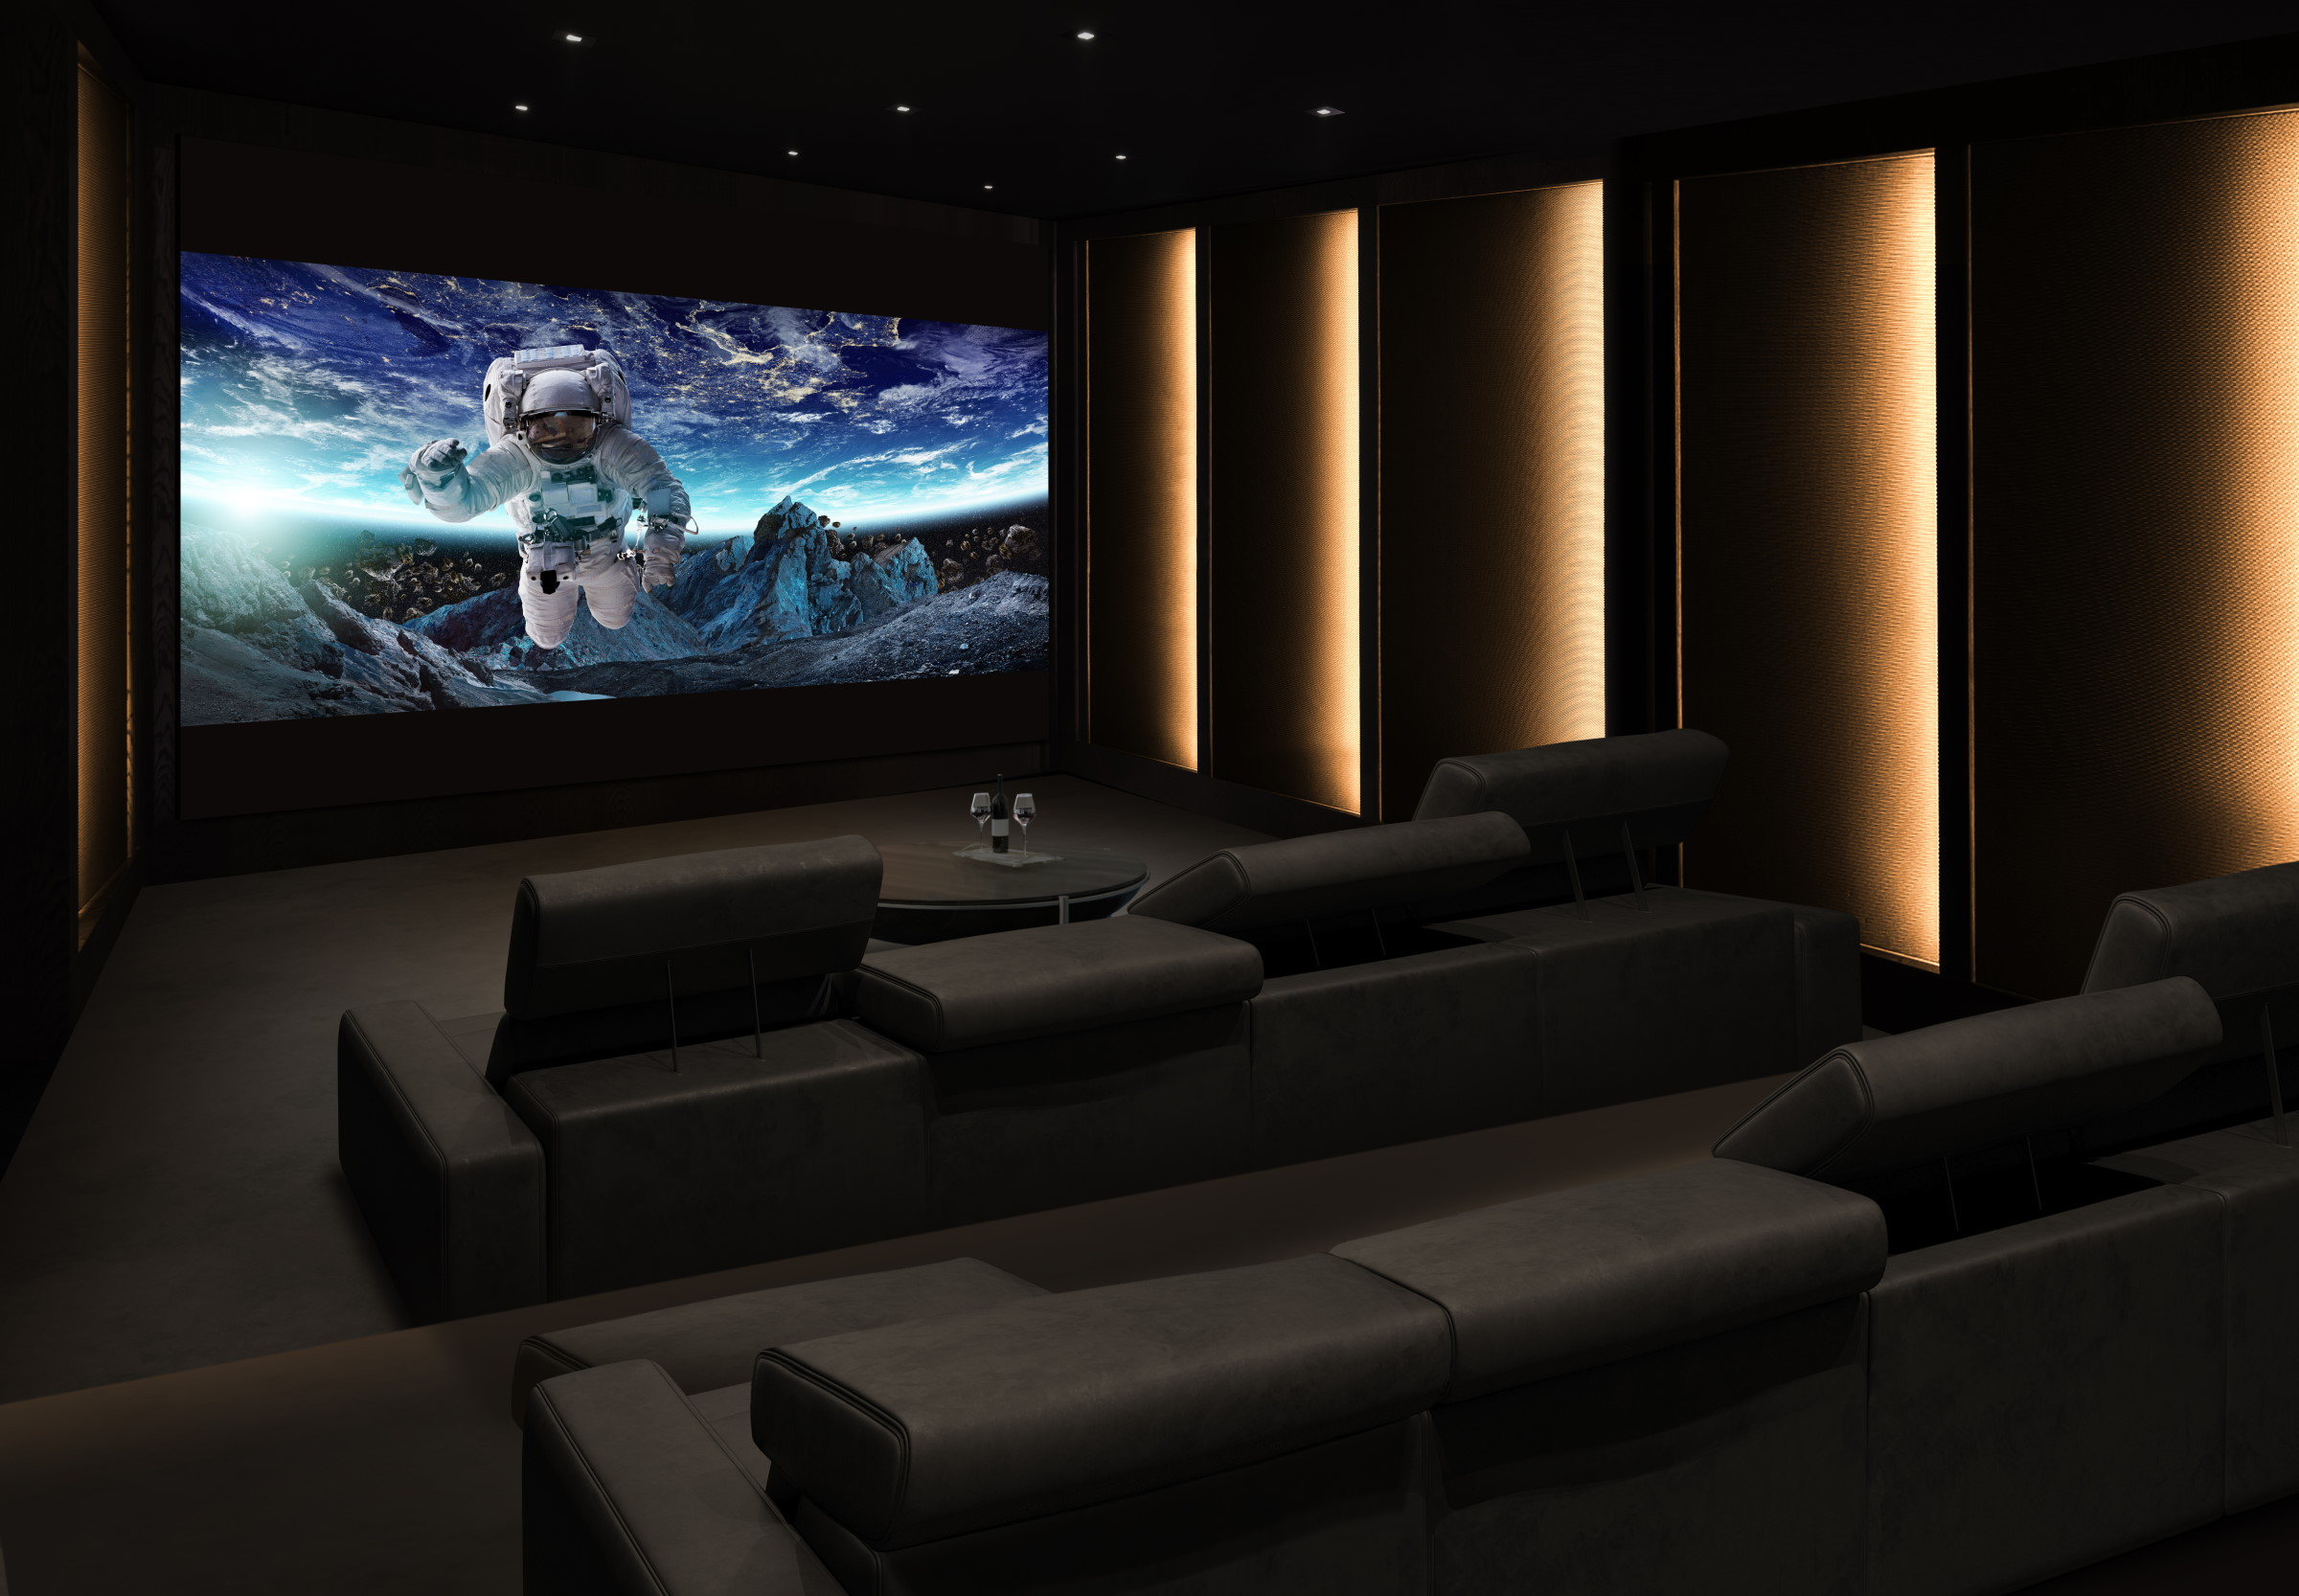 Build Your Own Home Theatre With LG's New Extreme Home Cinema